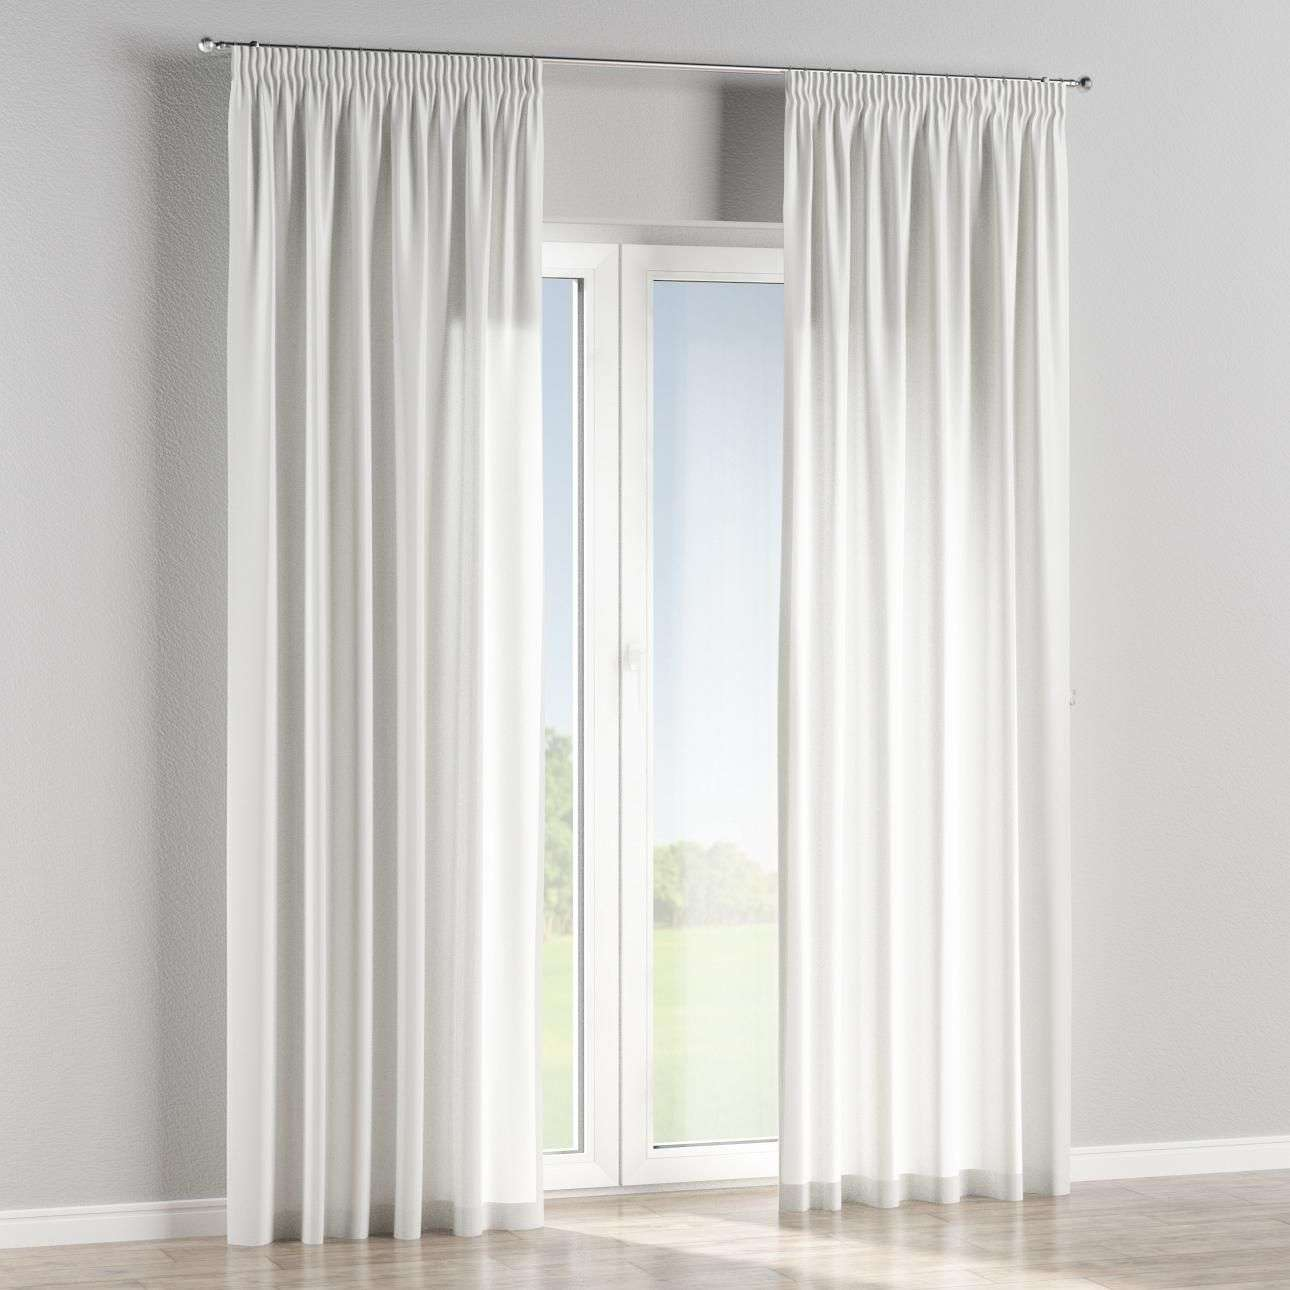 Pencil pleat lined curtains in collection Rustica, fabric: 140-31